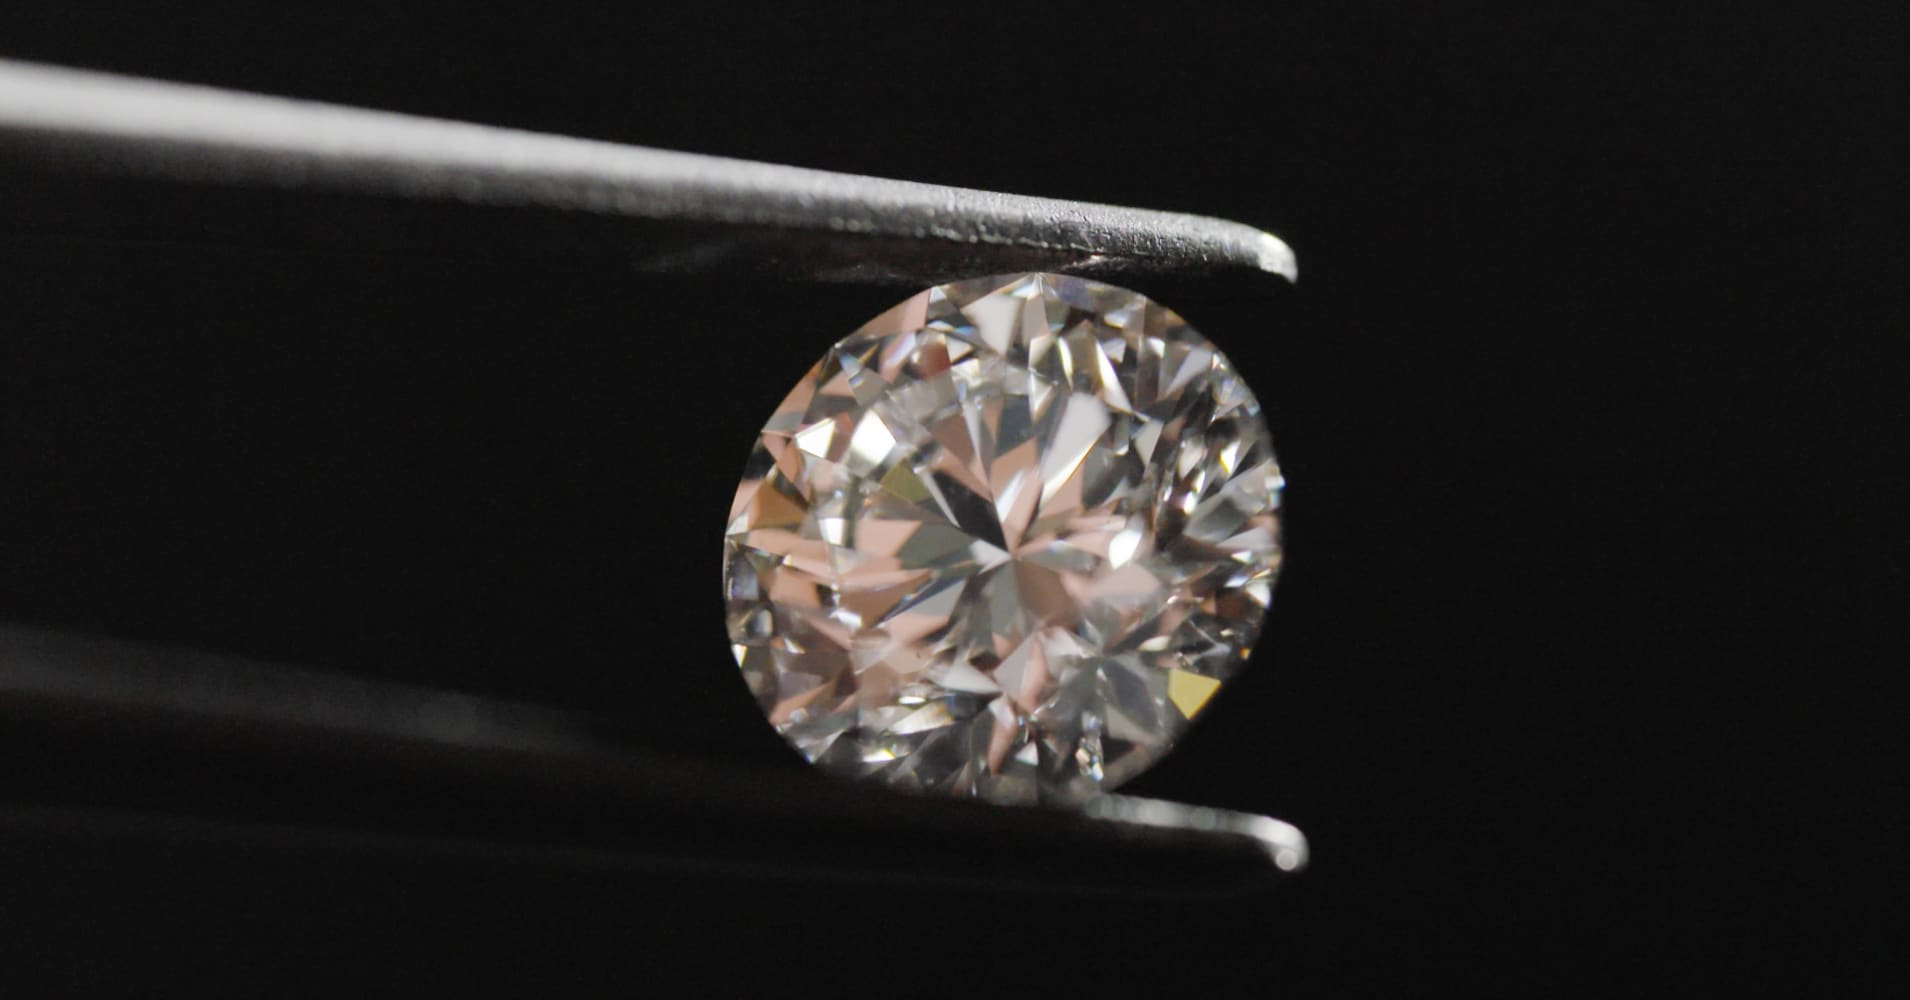 diamonds you accents natural with tell which real verbena diamond lab can grown brilliant news earth are